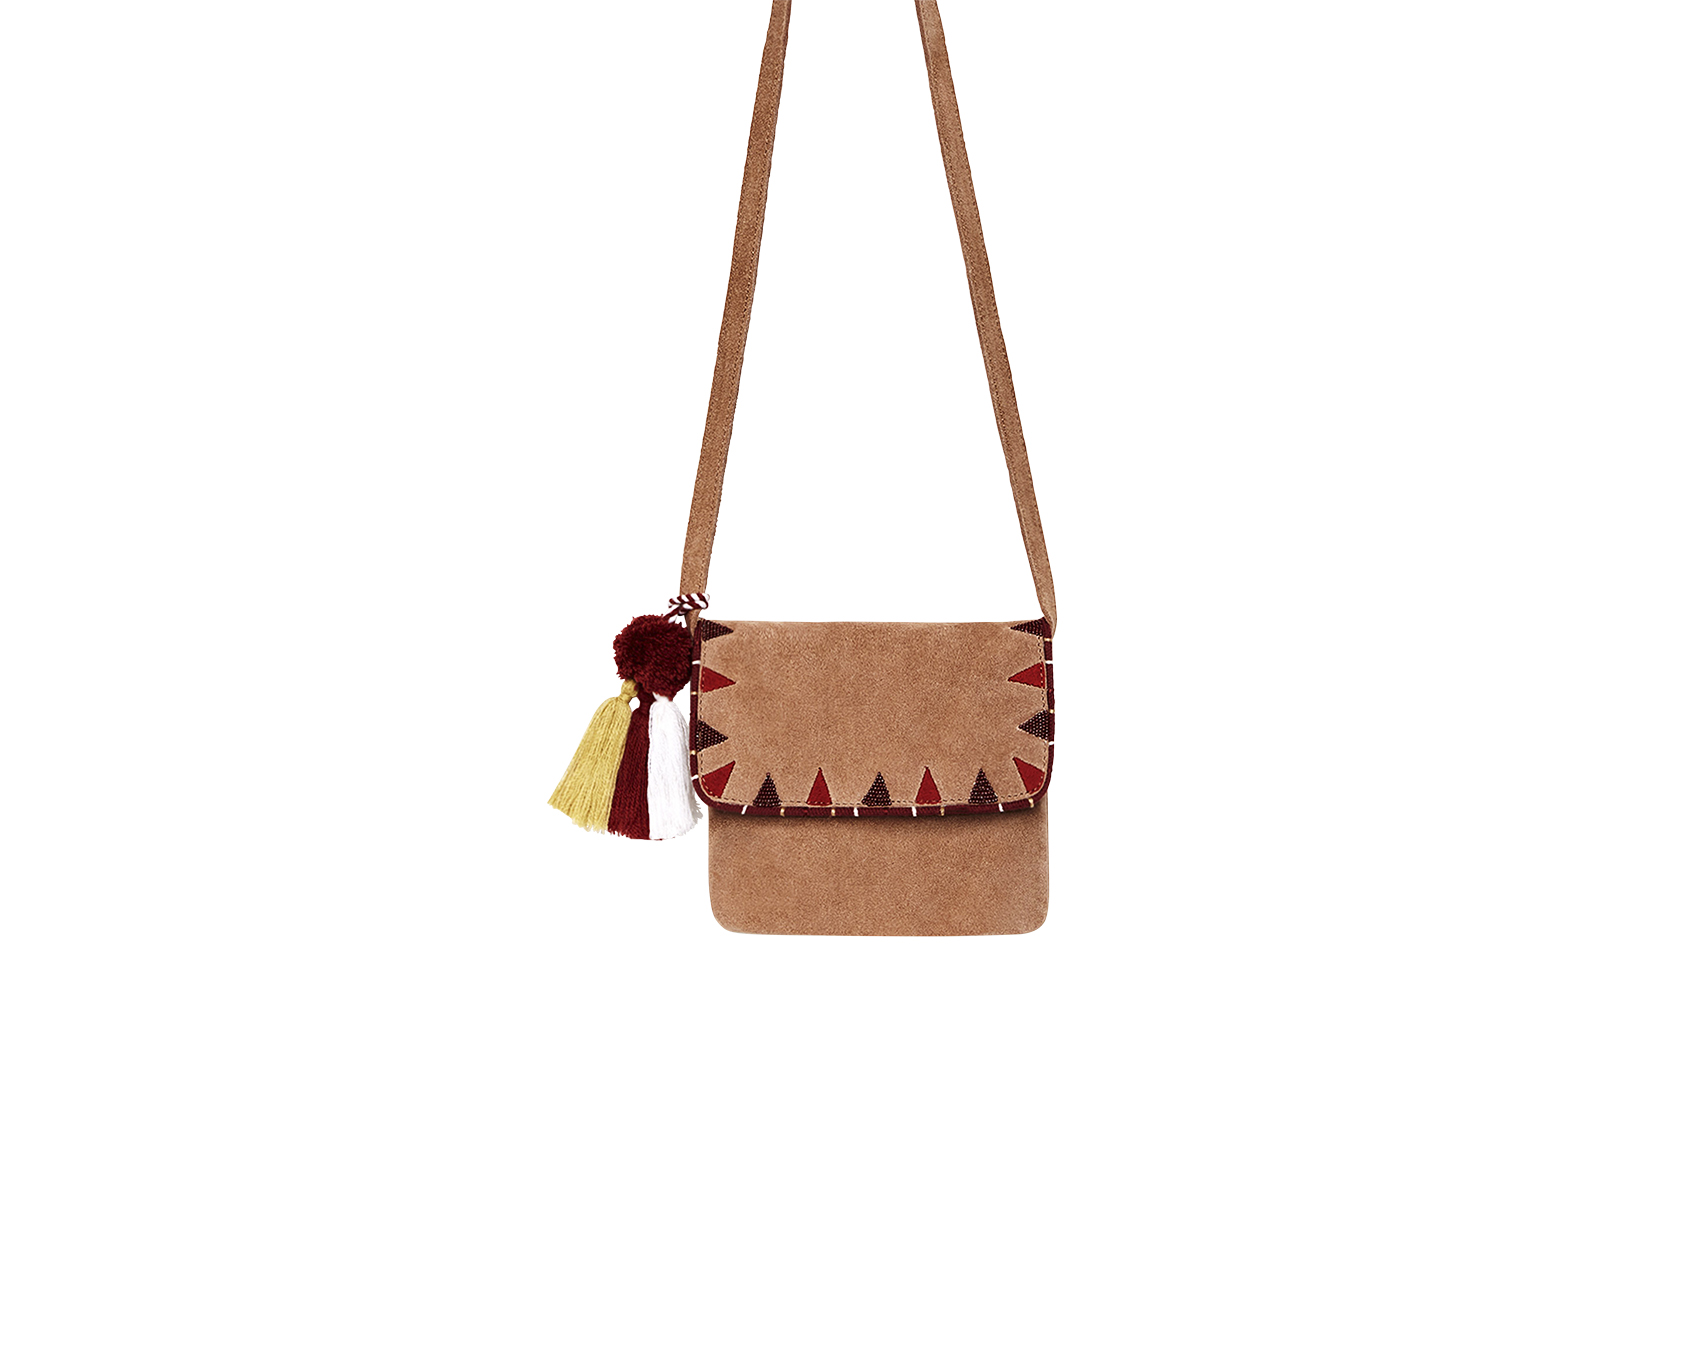 Zara Girl's leather crossbody bag